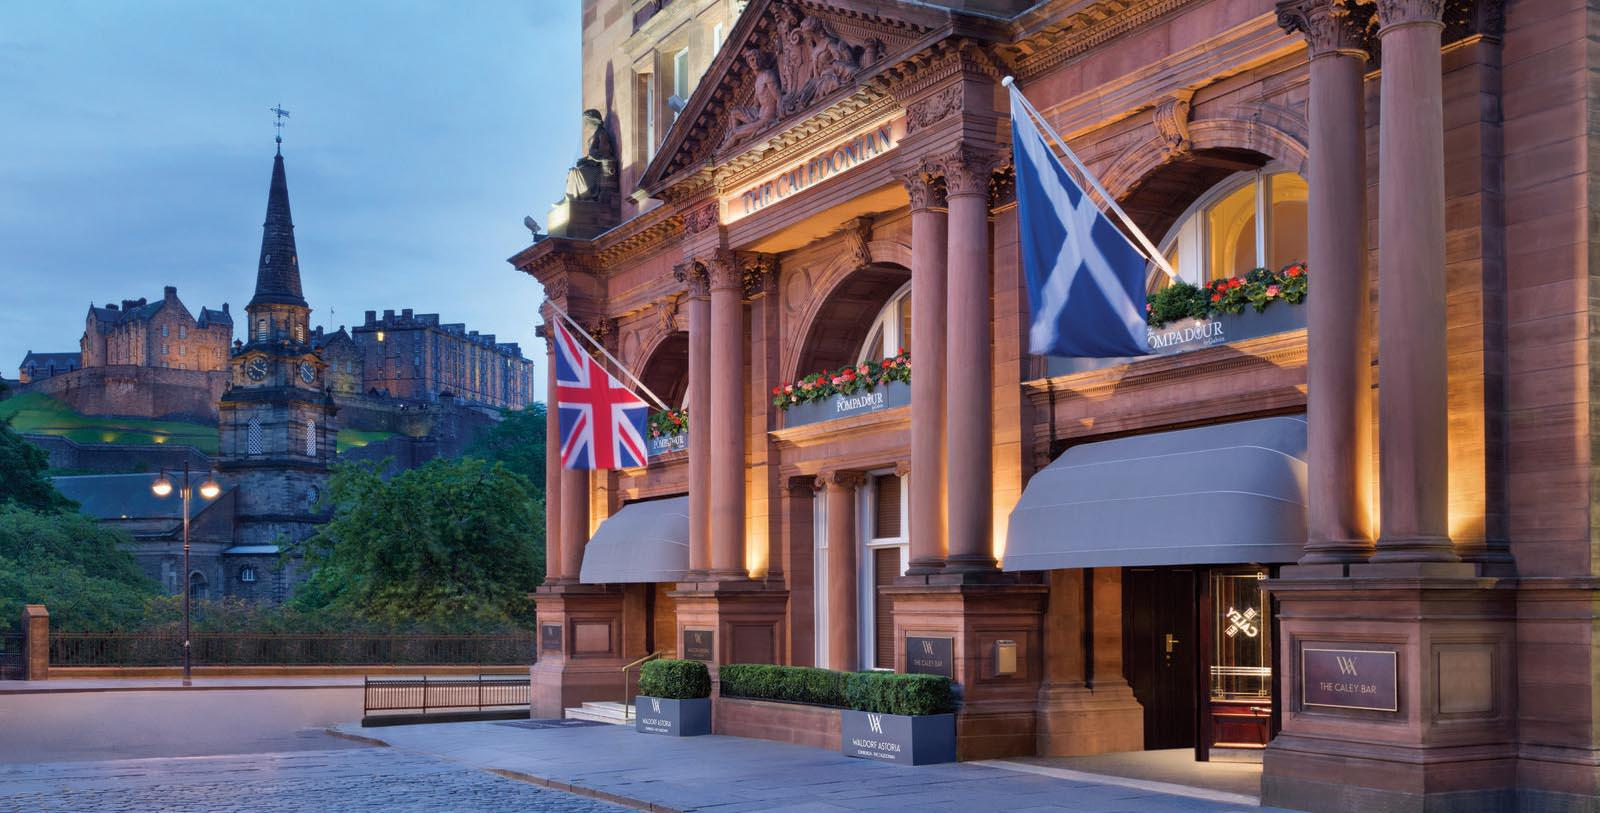 Image of Hotel Front Entrance at Waldorf Astoria Edinburgh - The Caledonian, 1903, Member of Historic Hotels Worldwide, in Edinburgh, Scotland, United Kingdom, Special Offers, Discounted Rates, Families, Romantic Escape, Honeymoons, Anniversaries, Reunions